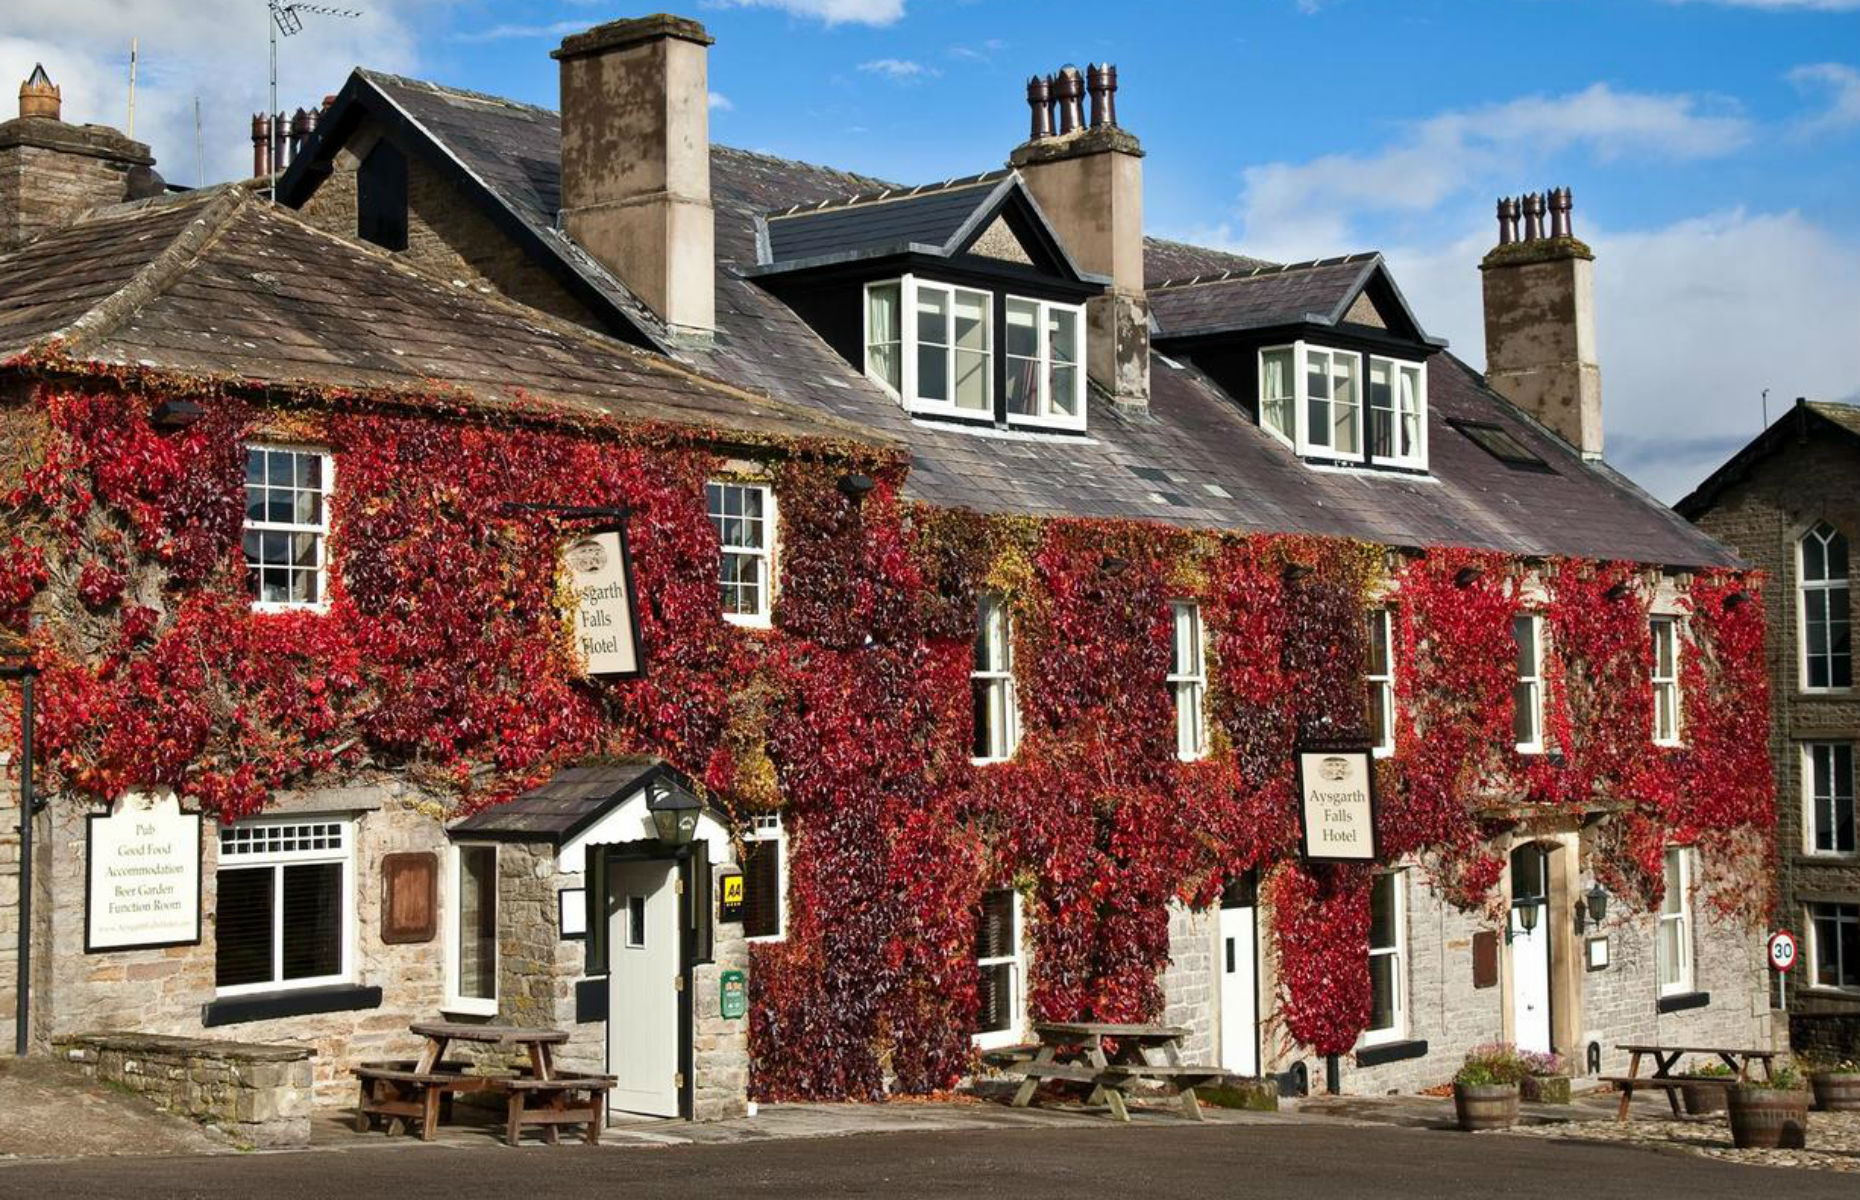 Aysgarth Falls Hotel (Image: Booking.com)